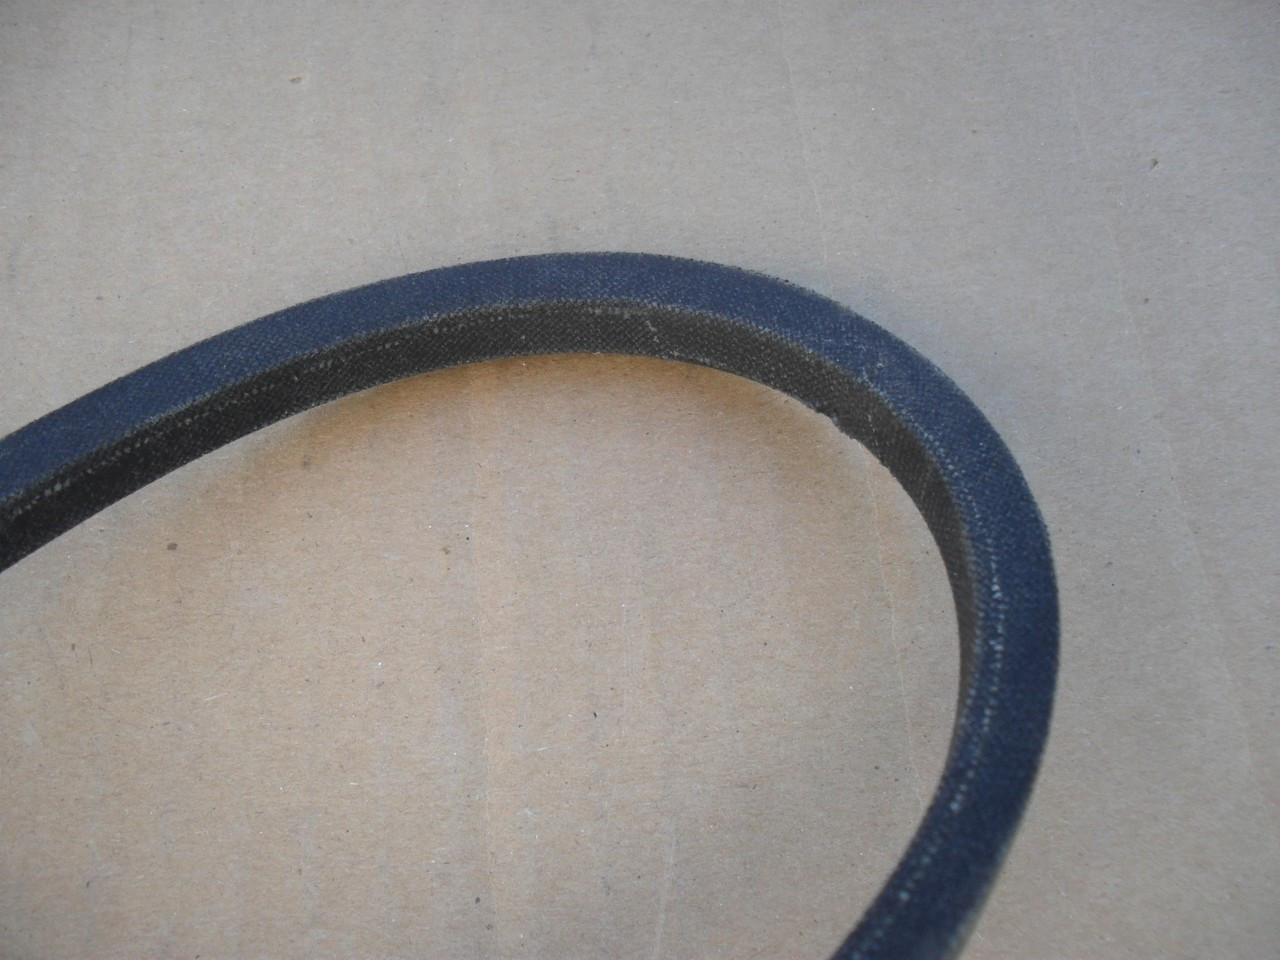 SIMPLICITY MANUFACTURING 166172 made with Kevlar Replacement Belt